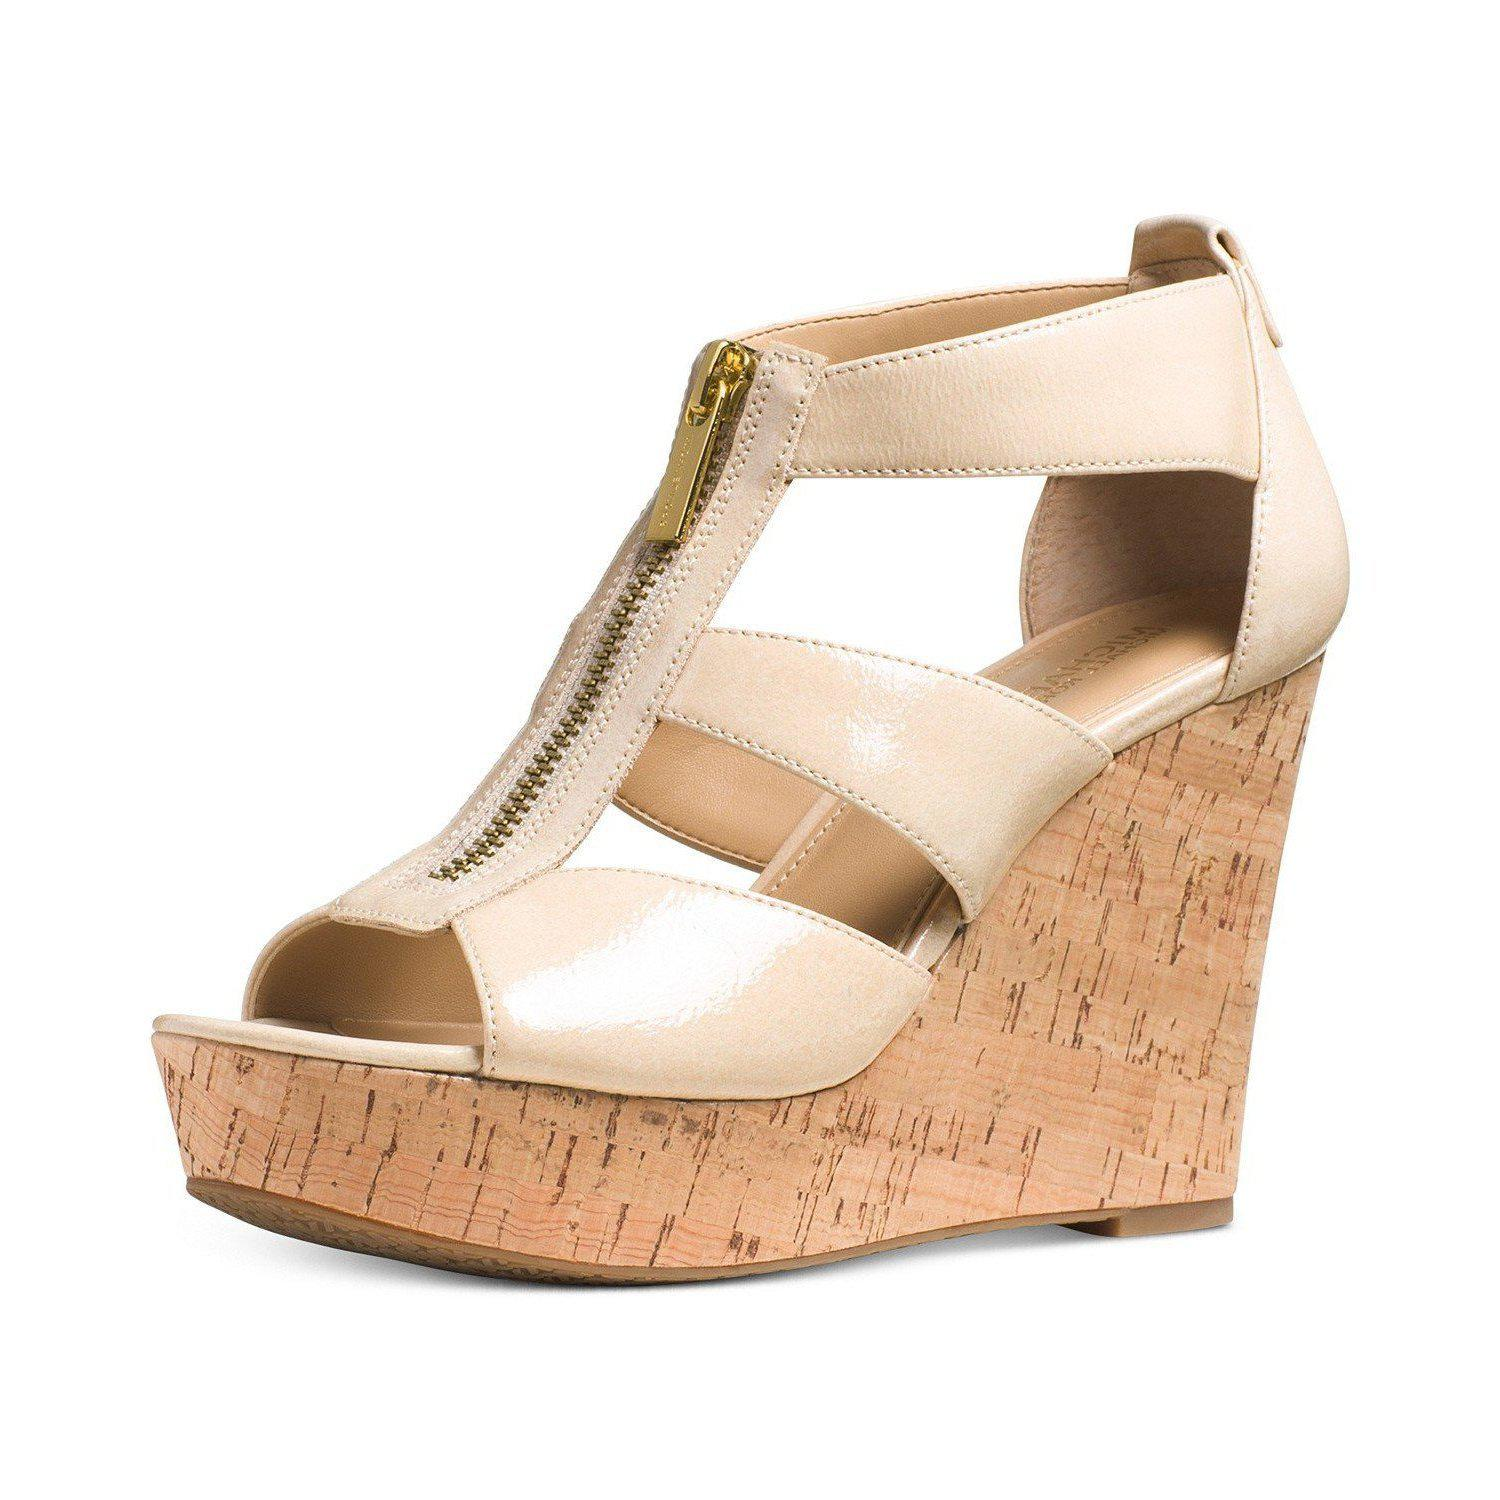 Michael Michael Kors Damita Platform Wedge Sandals-Shoes-Michael Kors-6-ShoeShock